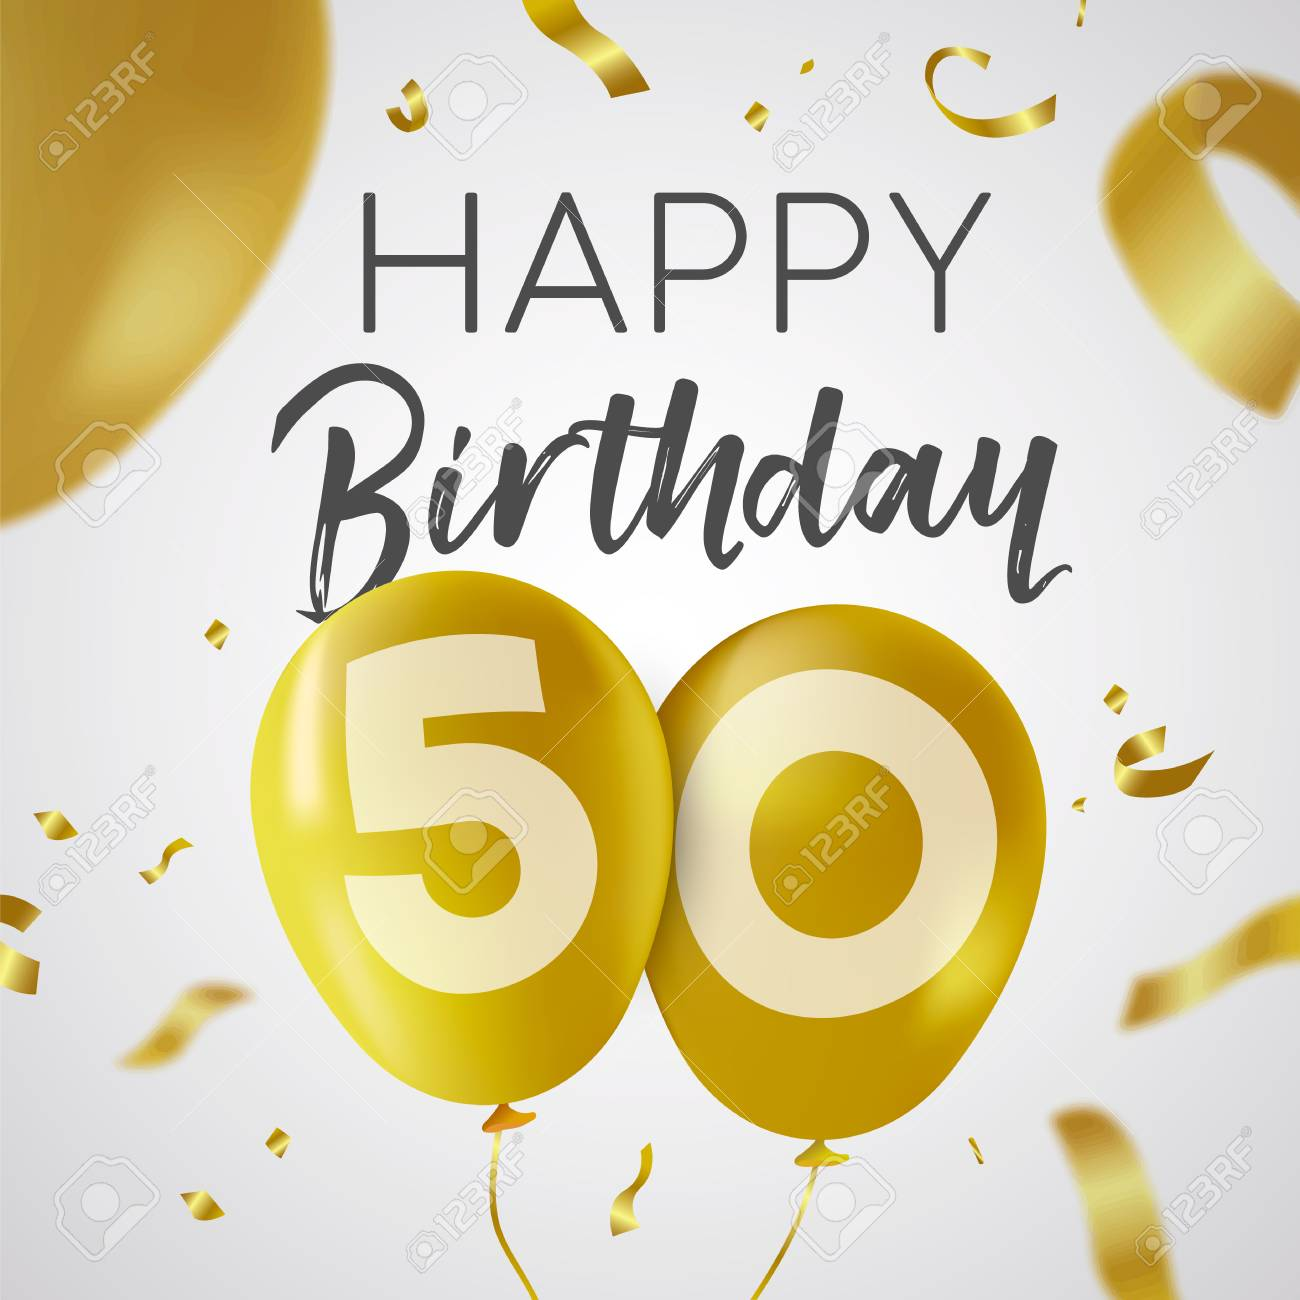 Happy Birthday 50 Fifty Years Luxury Design With Gold Balloon Number And Golden Confetti Decoration